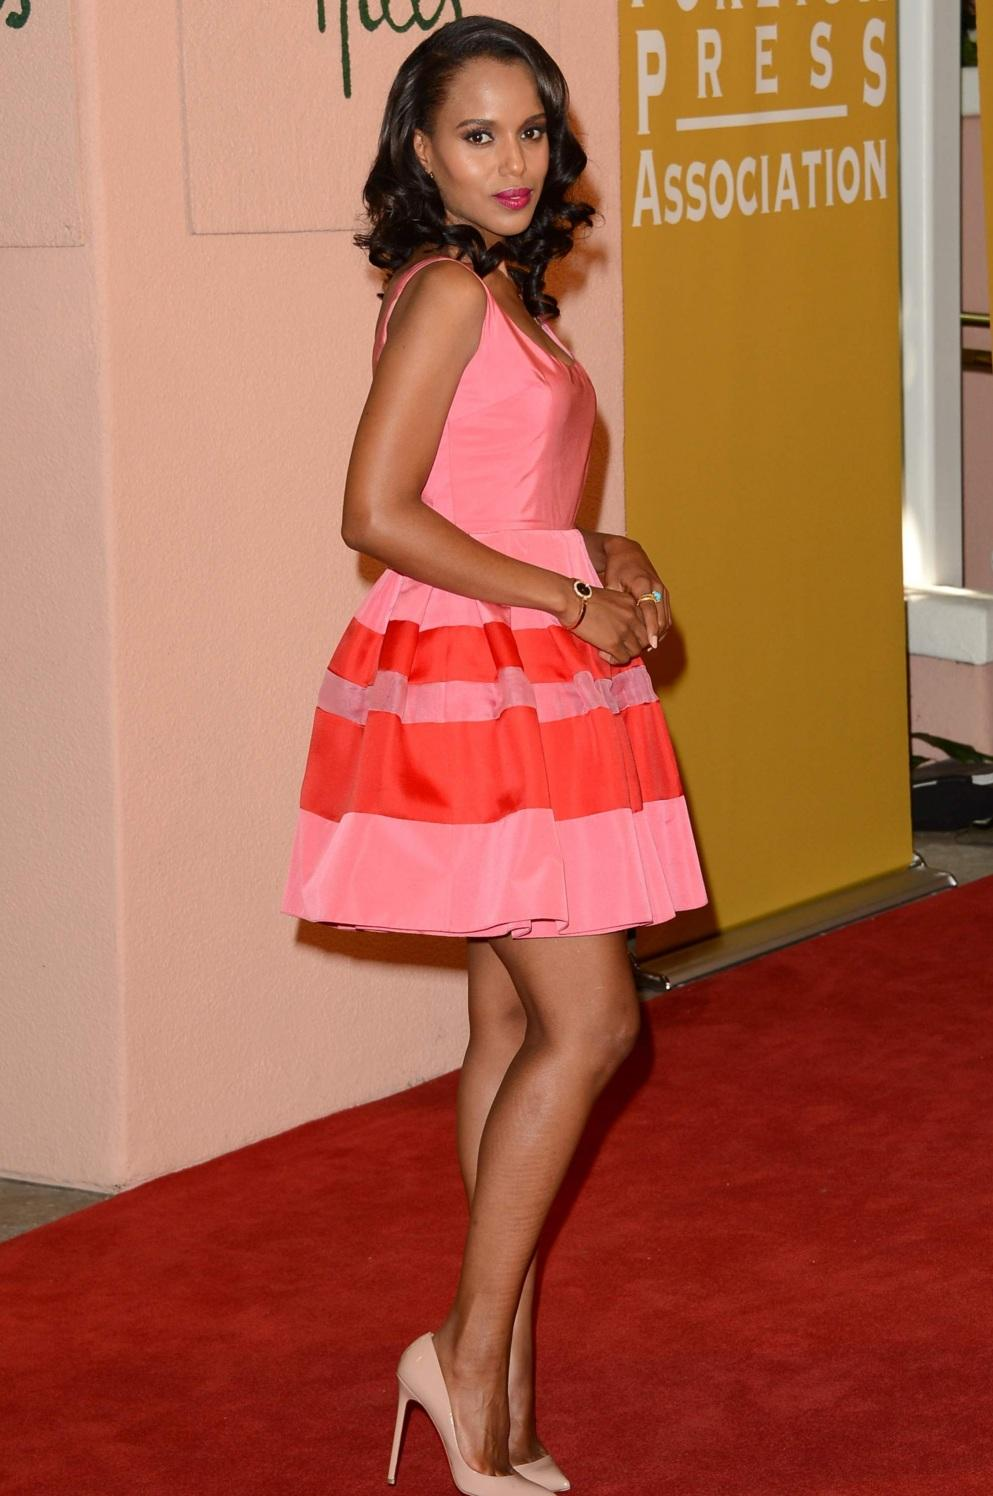 Kerry Washington Pink Dress Hfpas Installation Luncheon Kerry Washington Pink Dress Hfpas Installation Luncheon Hot